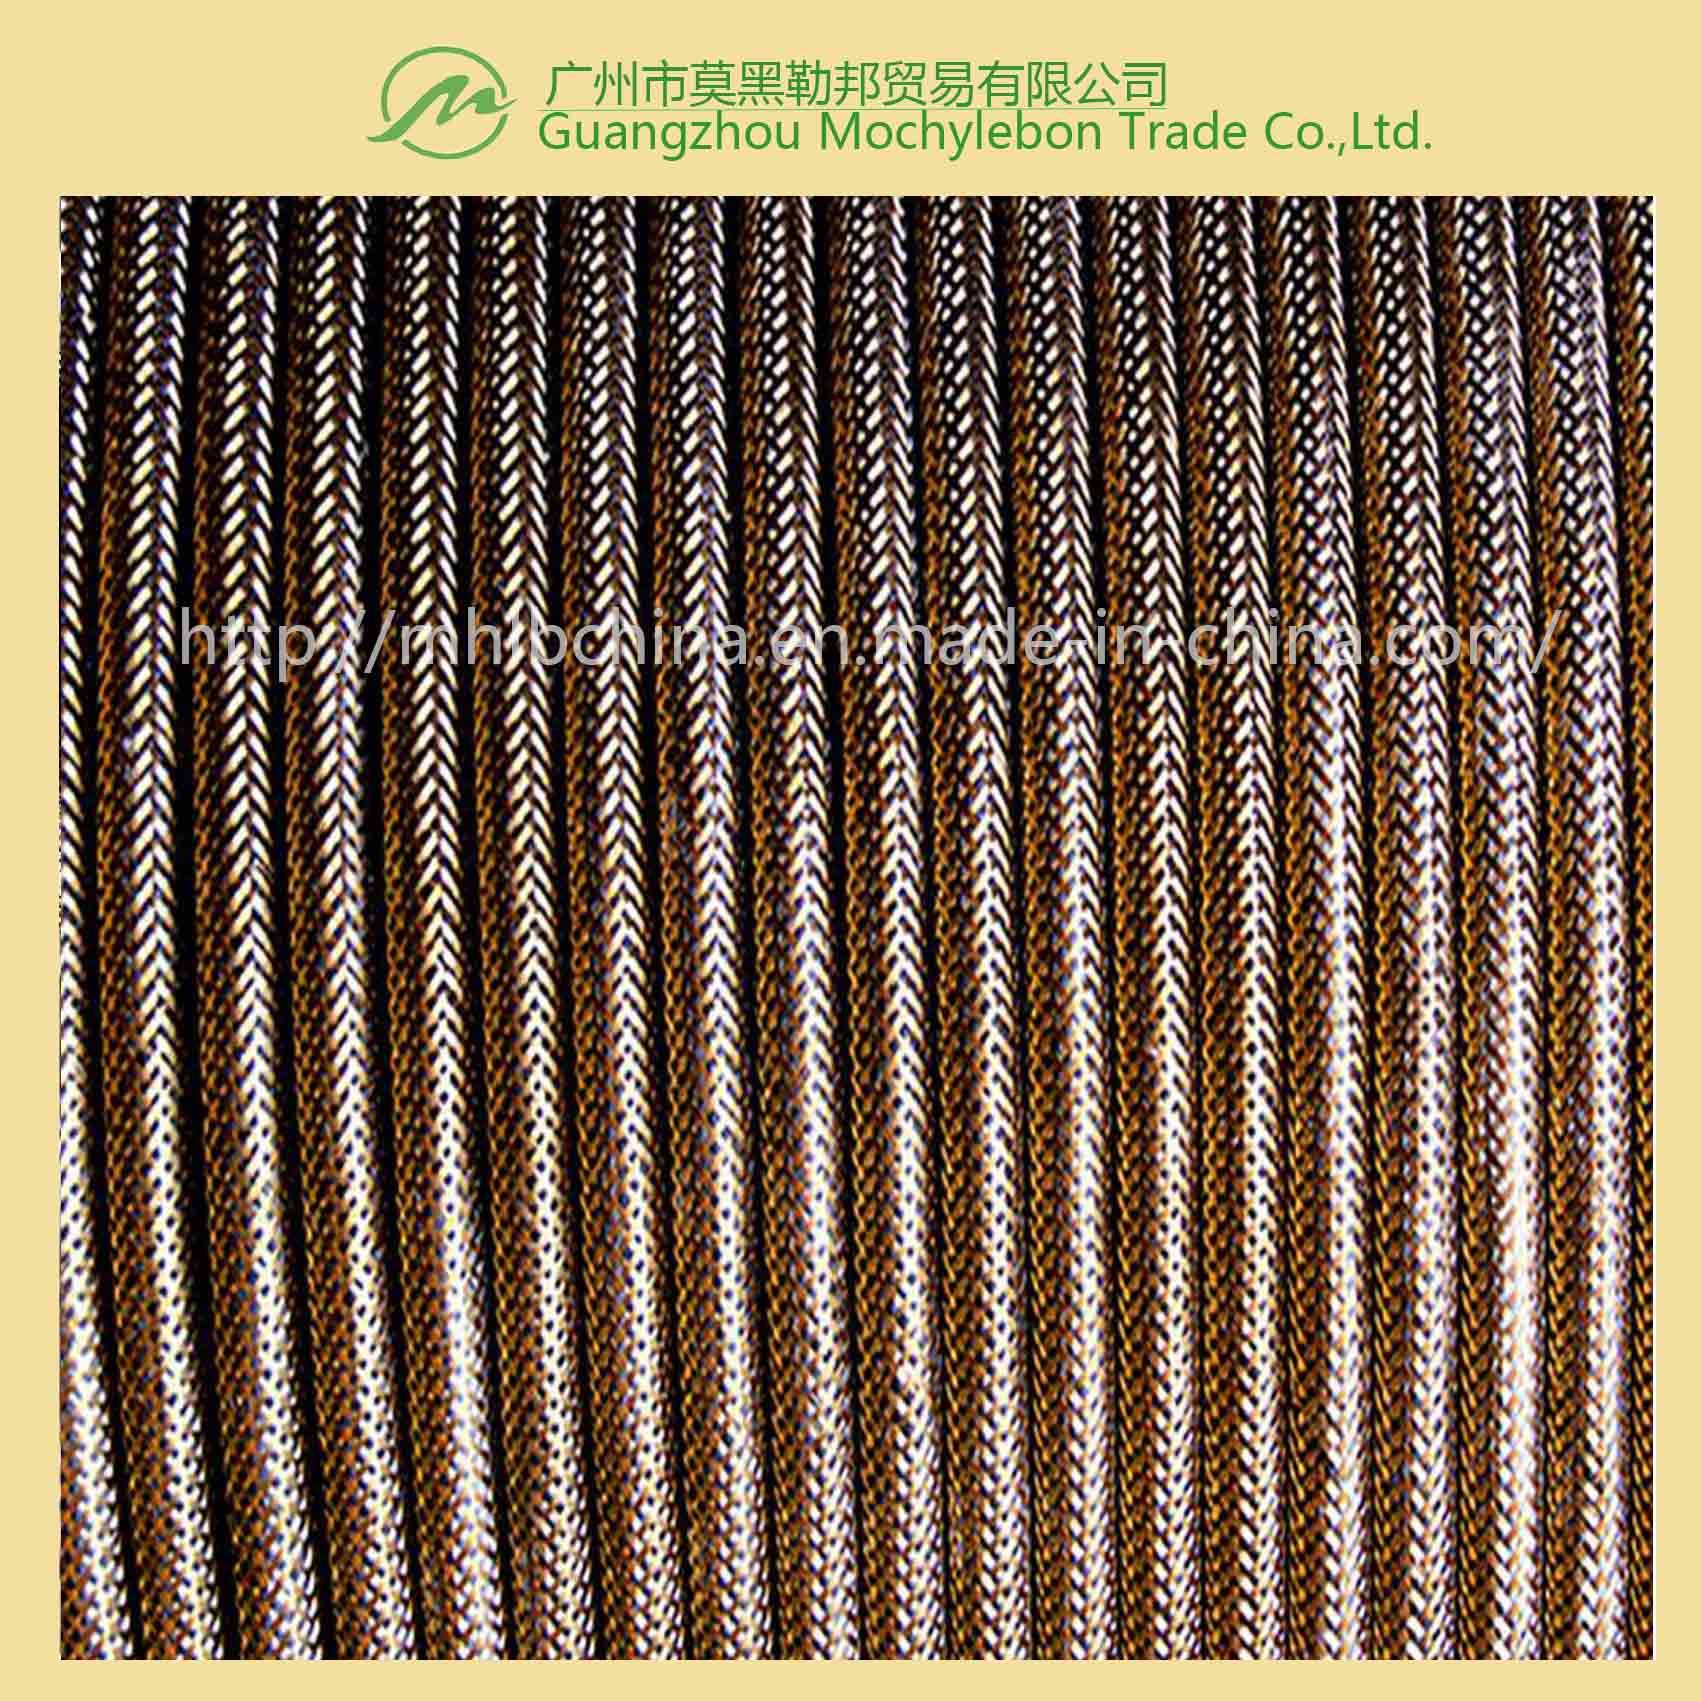 Wire Braided Hydraulic Hose for Coal Mine (602-3B-3/4)